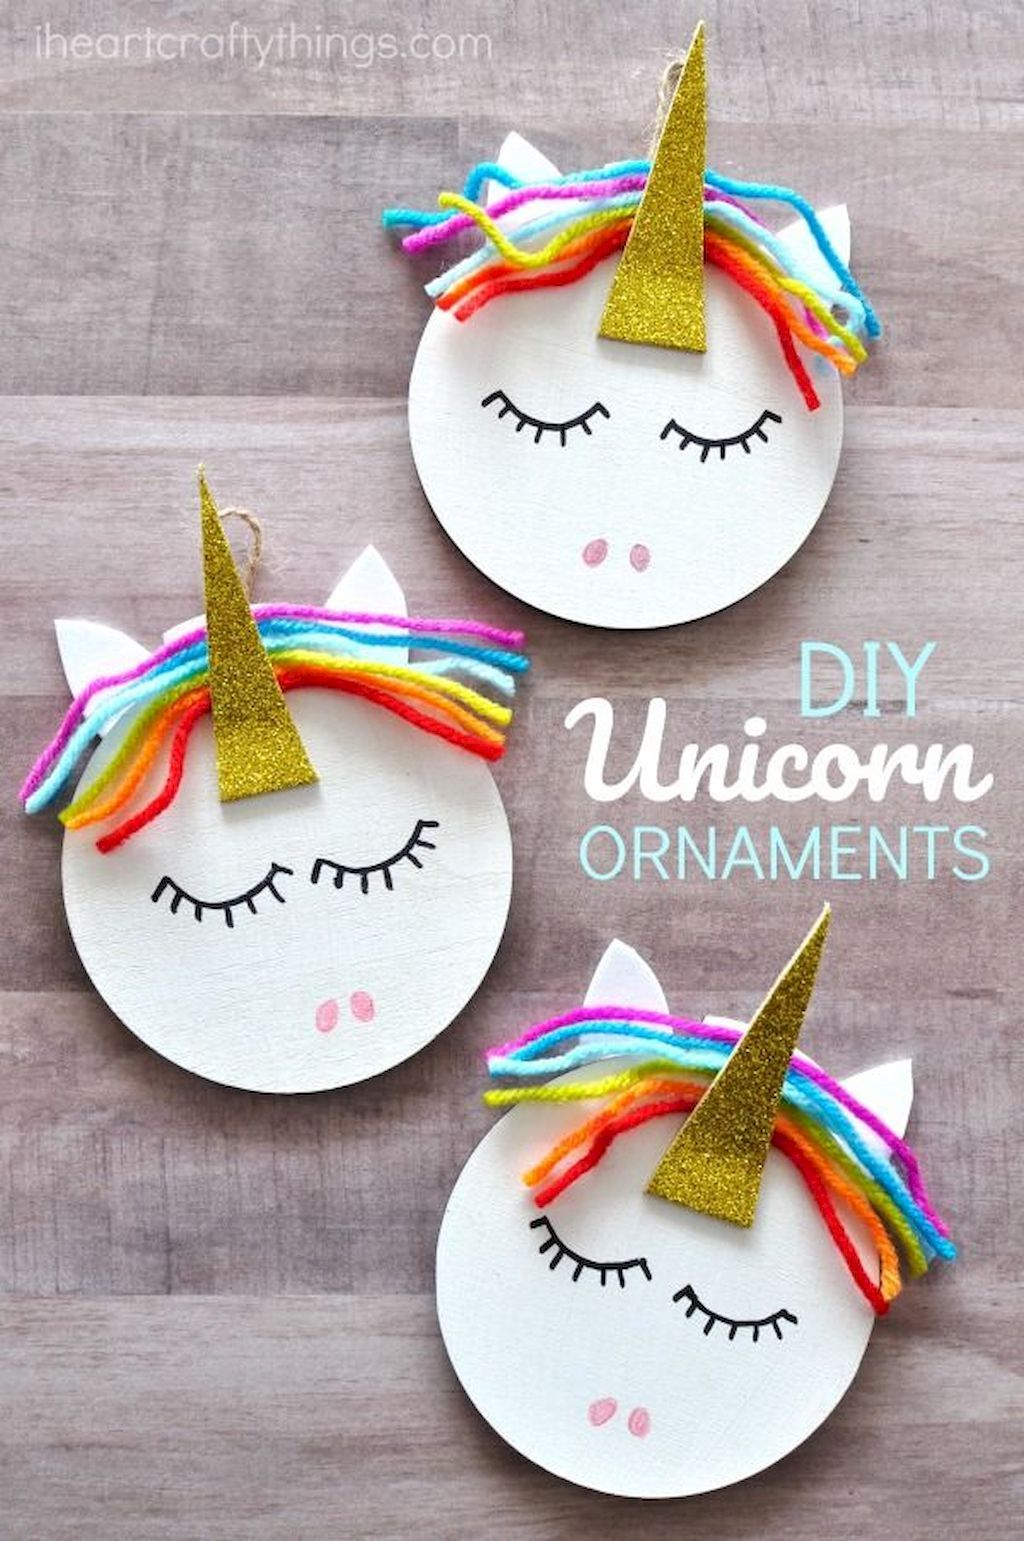 Awesome 20 Cheap and Easy DIY Crafts Ideas For Kids https